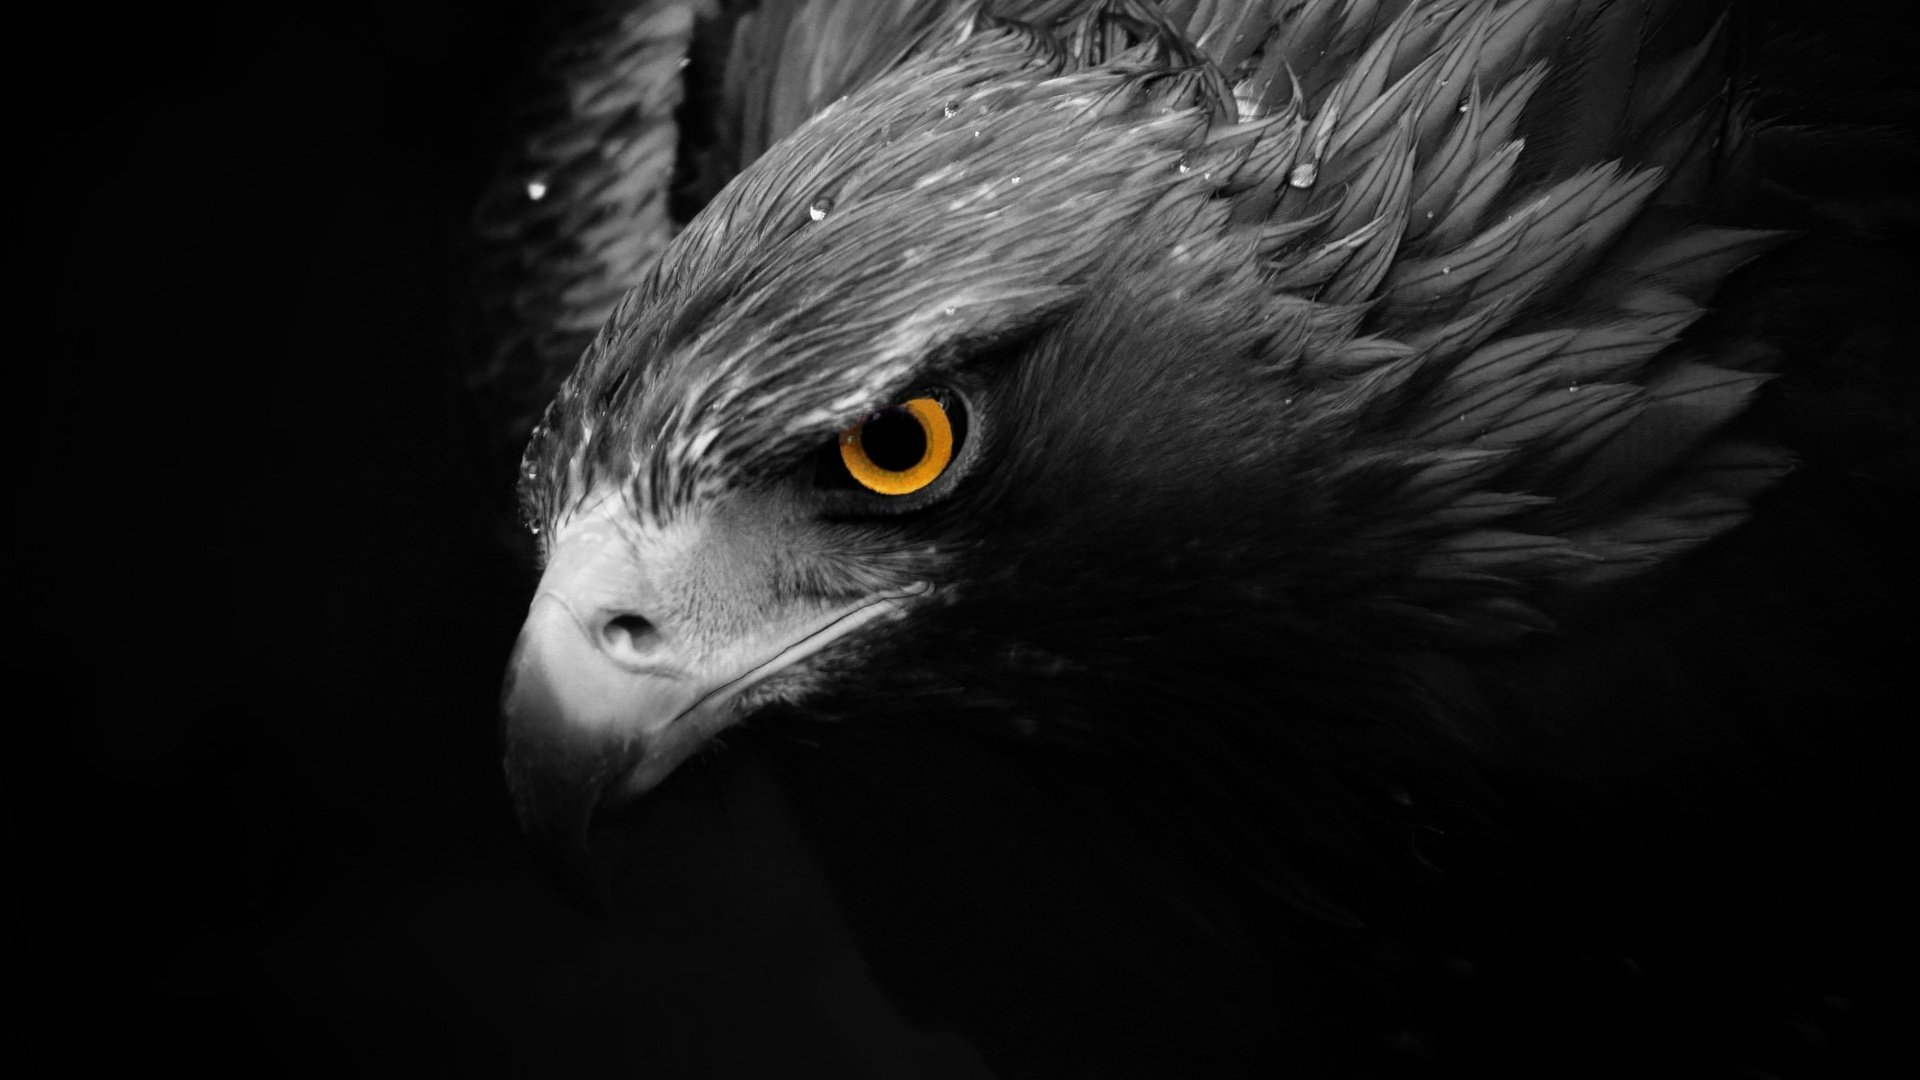 Eagle full hd wallpaper and background image 1920x1080 - Harpy eagle hd wallpaper ...